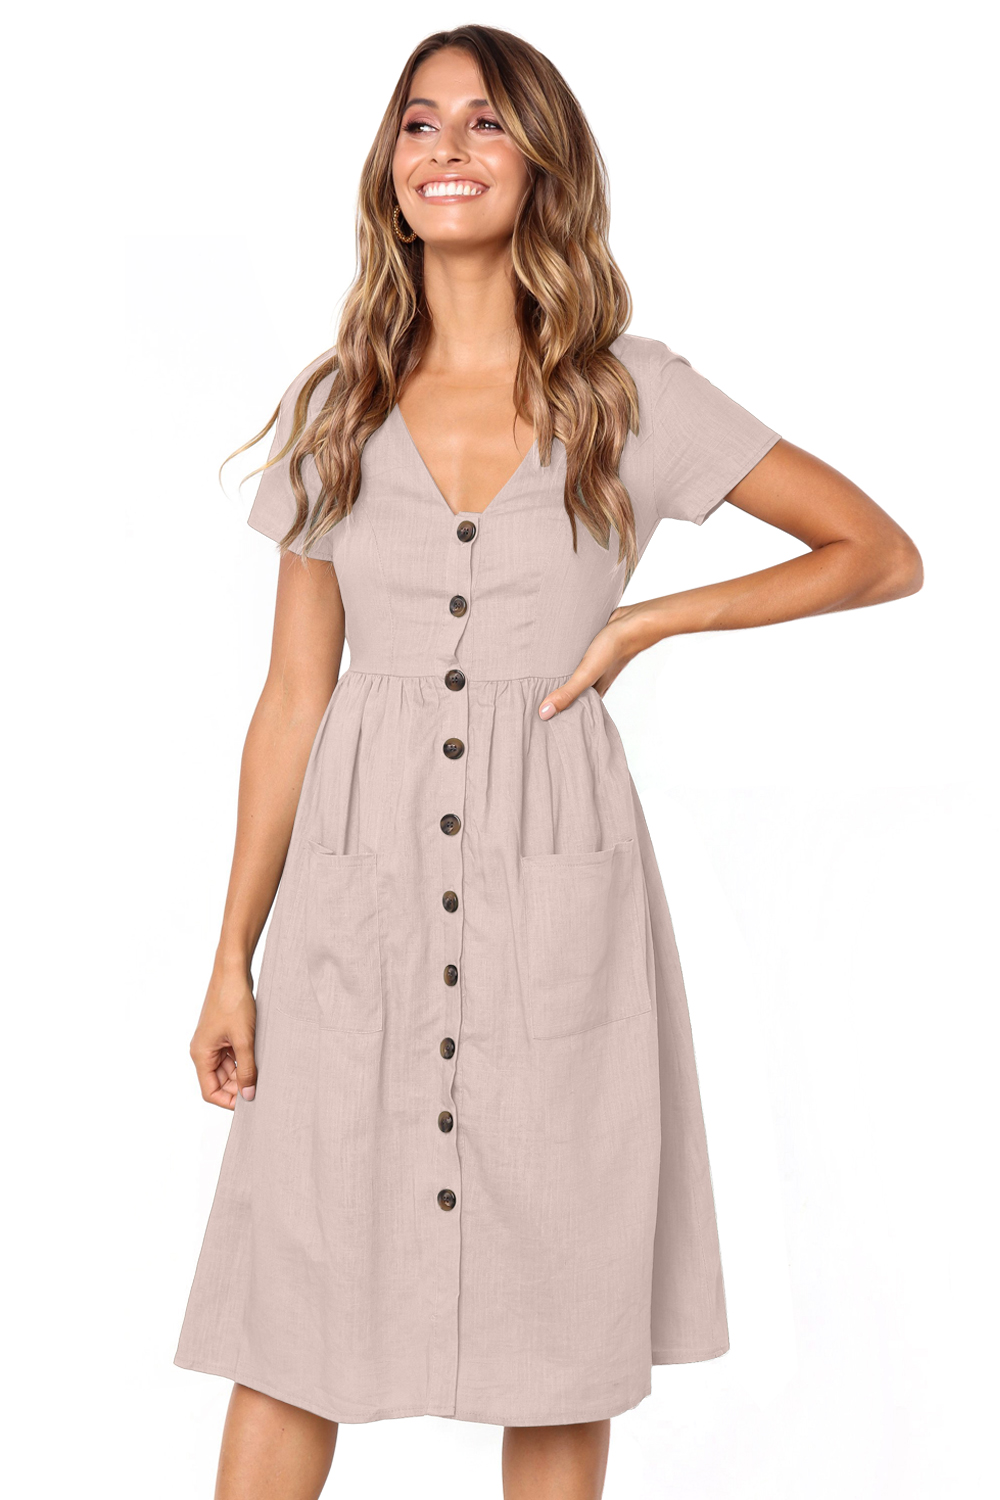 Dear-Lover Pink Stylish Button Front Midi Dress with Pockets